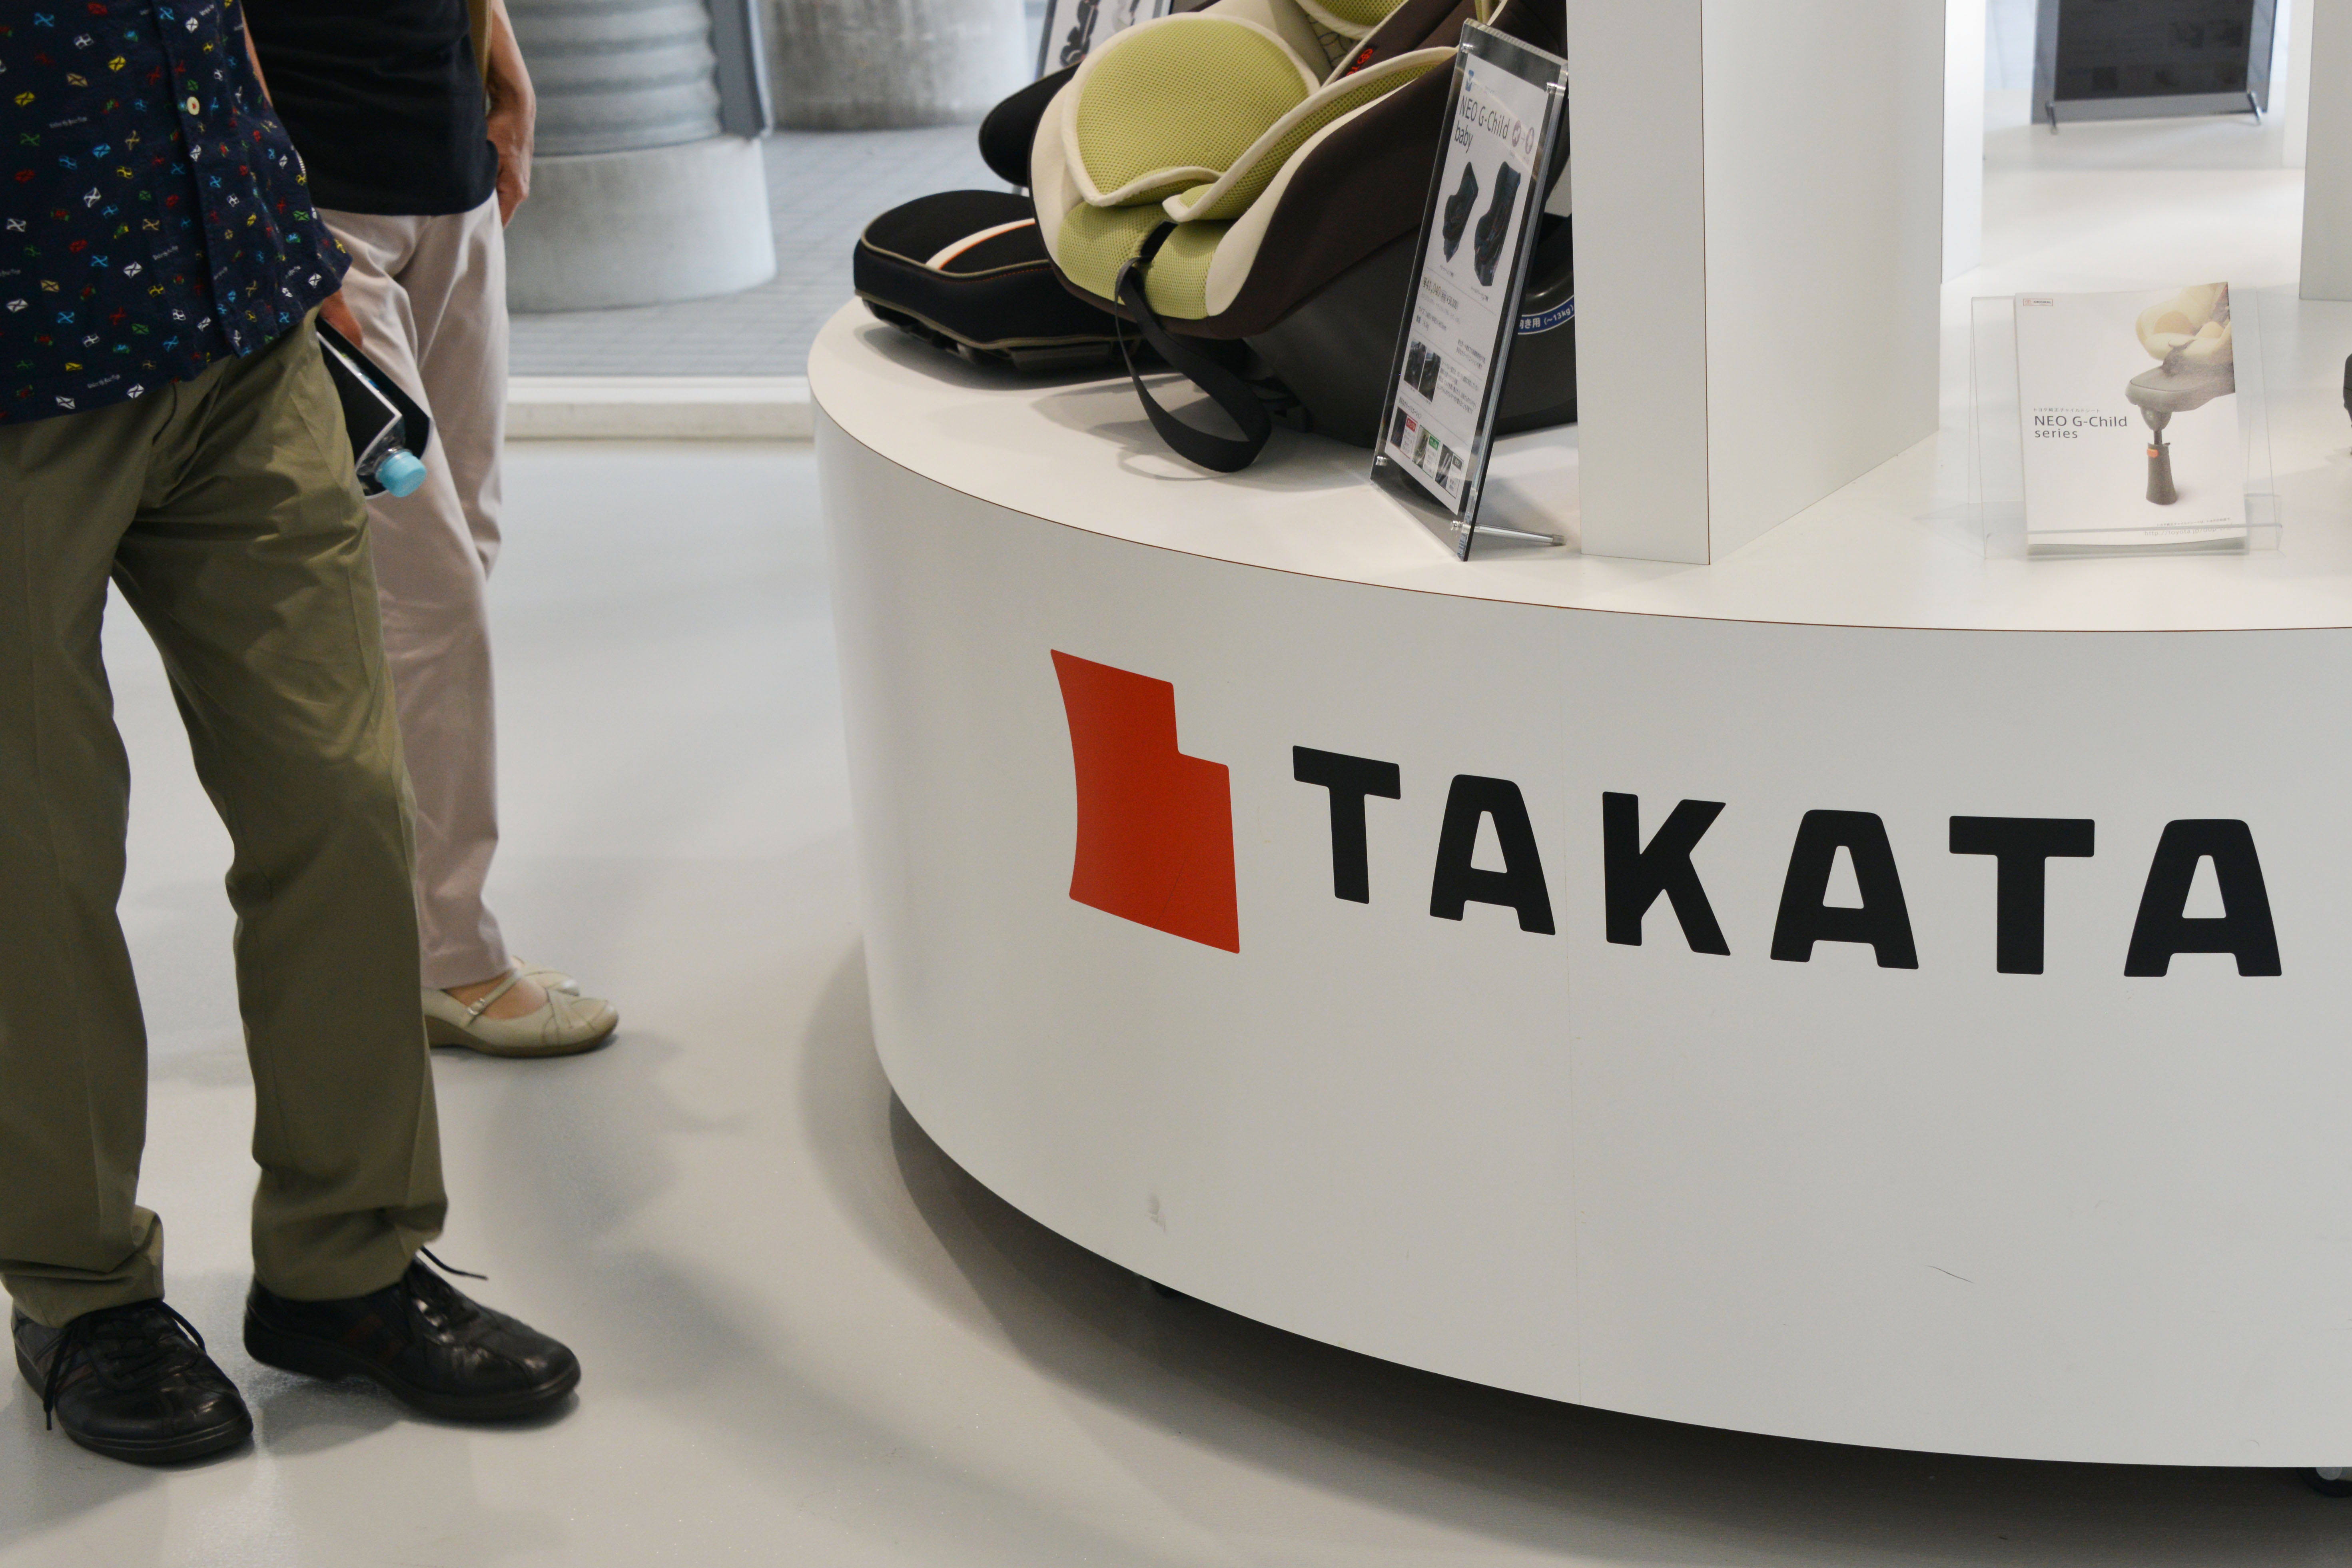 A visitor walks past displays of Takata Corp at a showroom for vehicles in Tokyo, Japan on May 20, 2015.